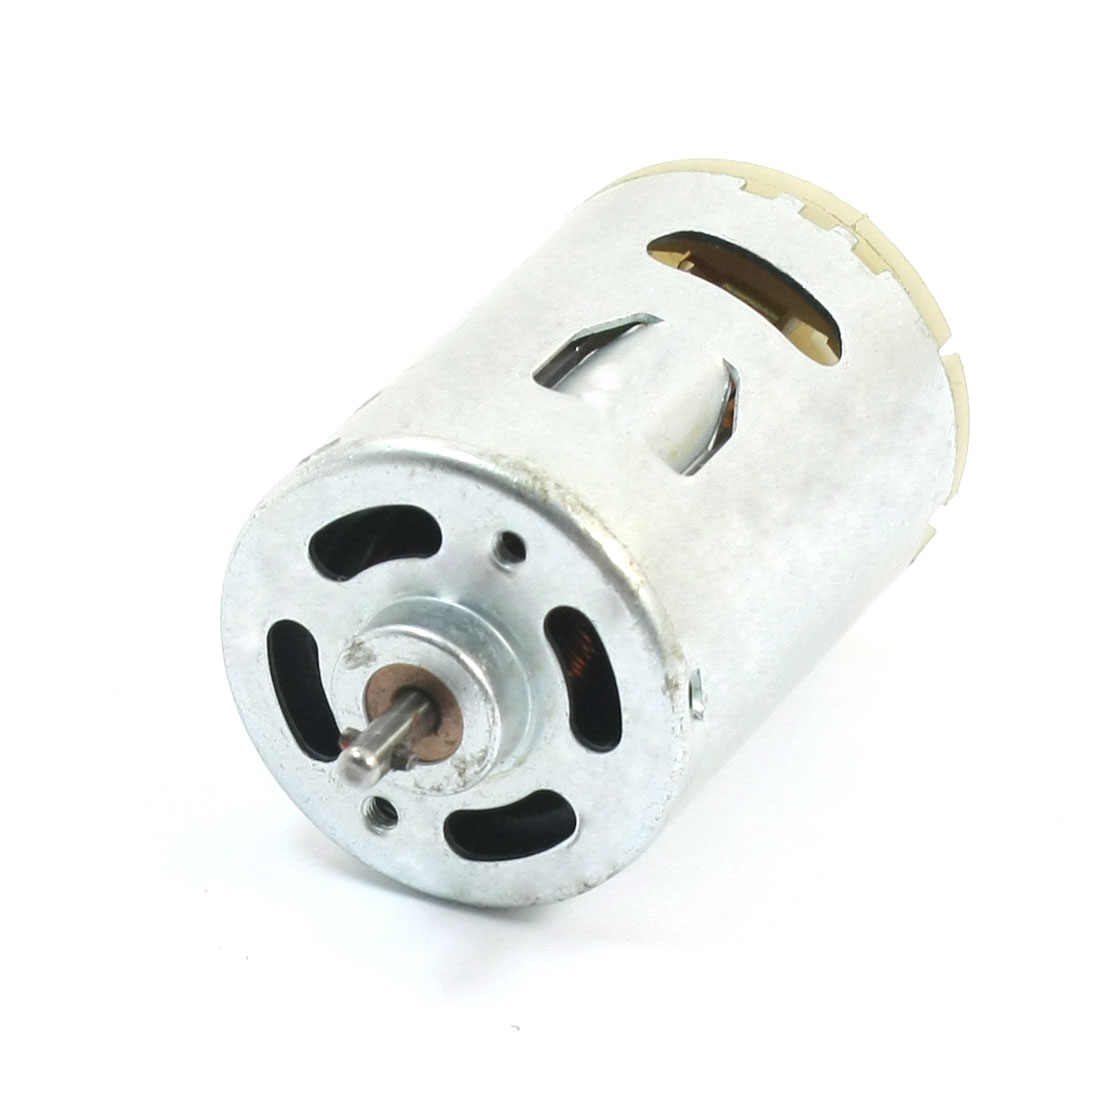 12V 22000RPM High Torque Electric Machine Tool Spare Parts DC Motor